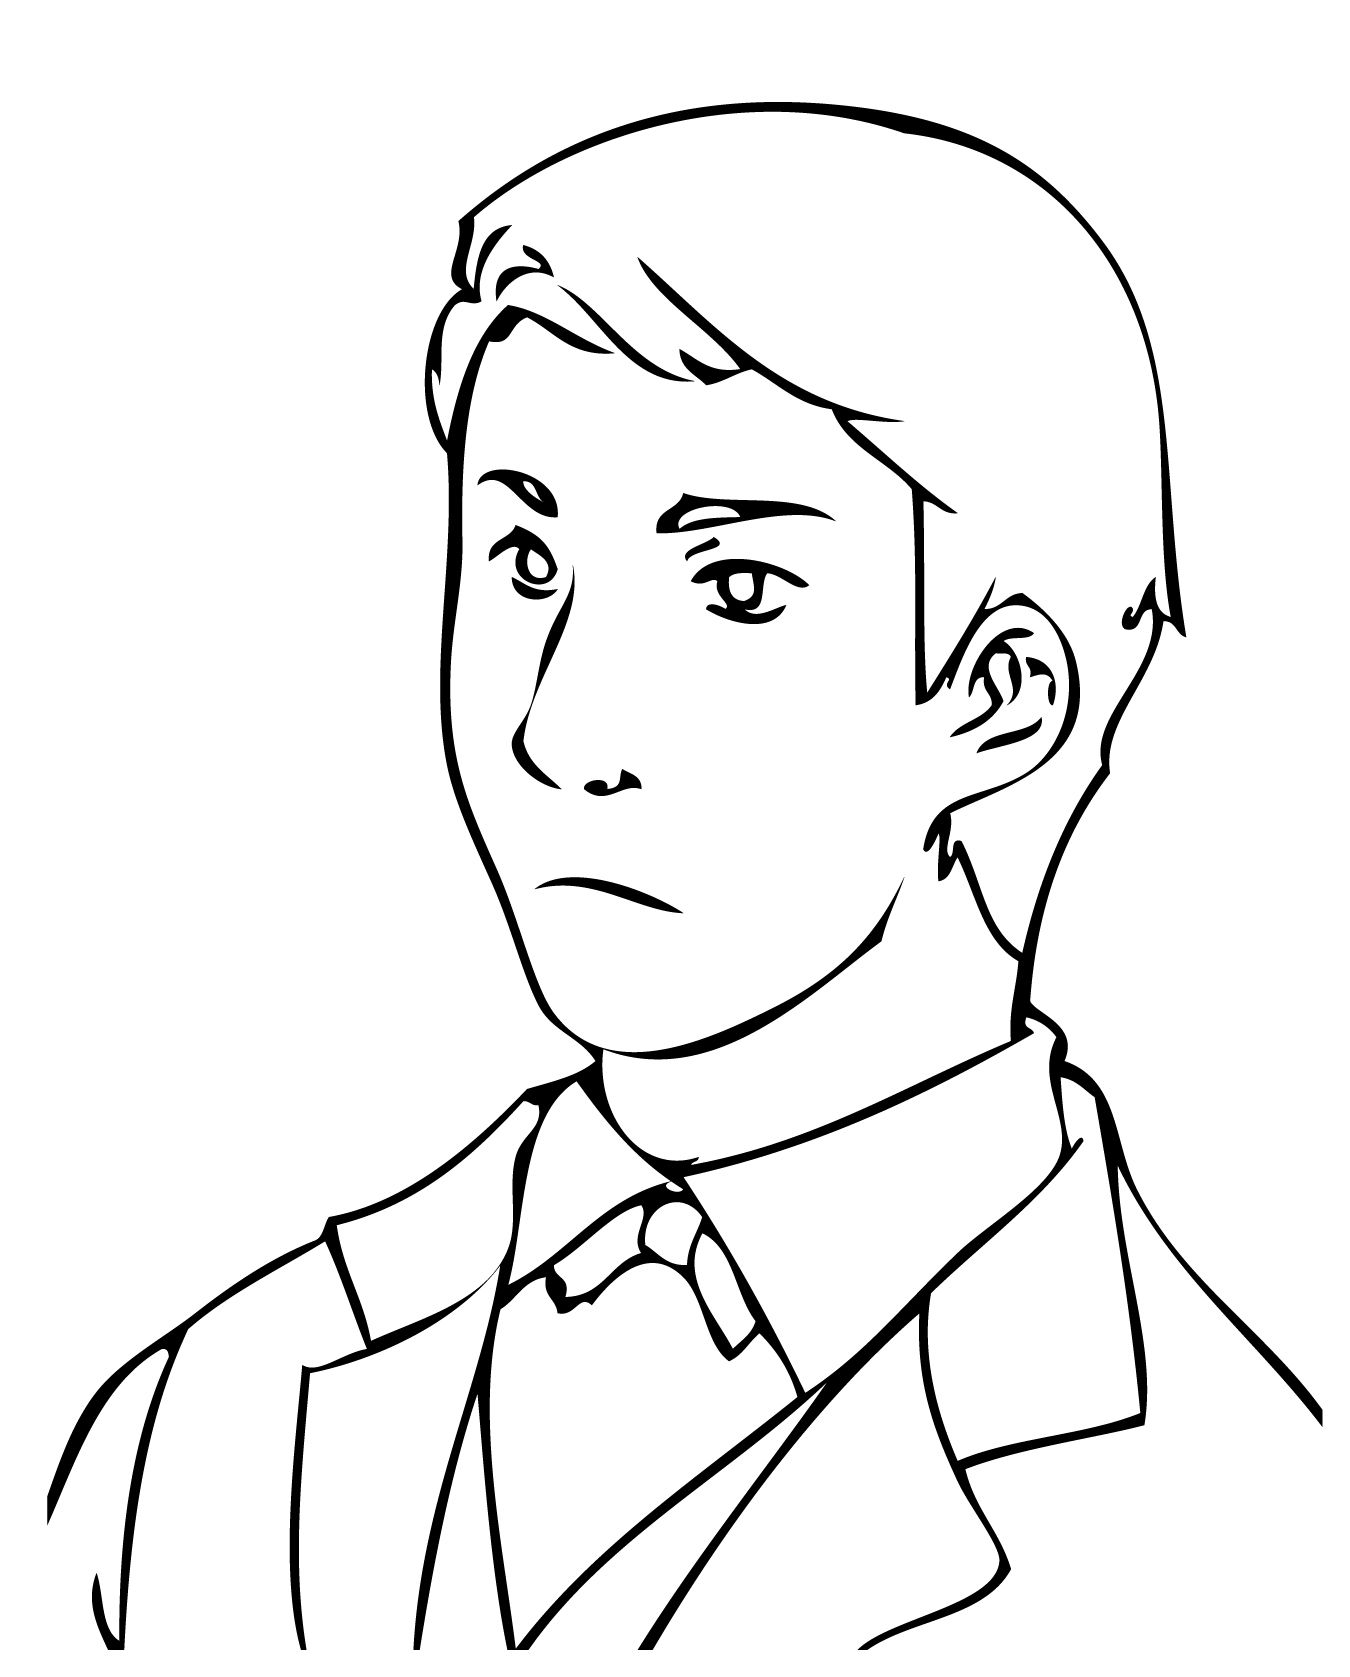 Thomas Edison As Young Man Coloring Page